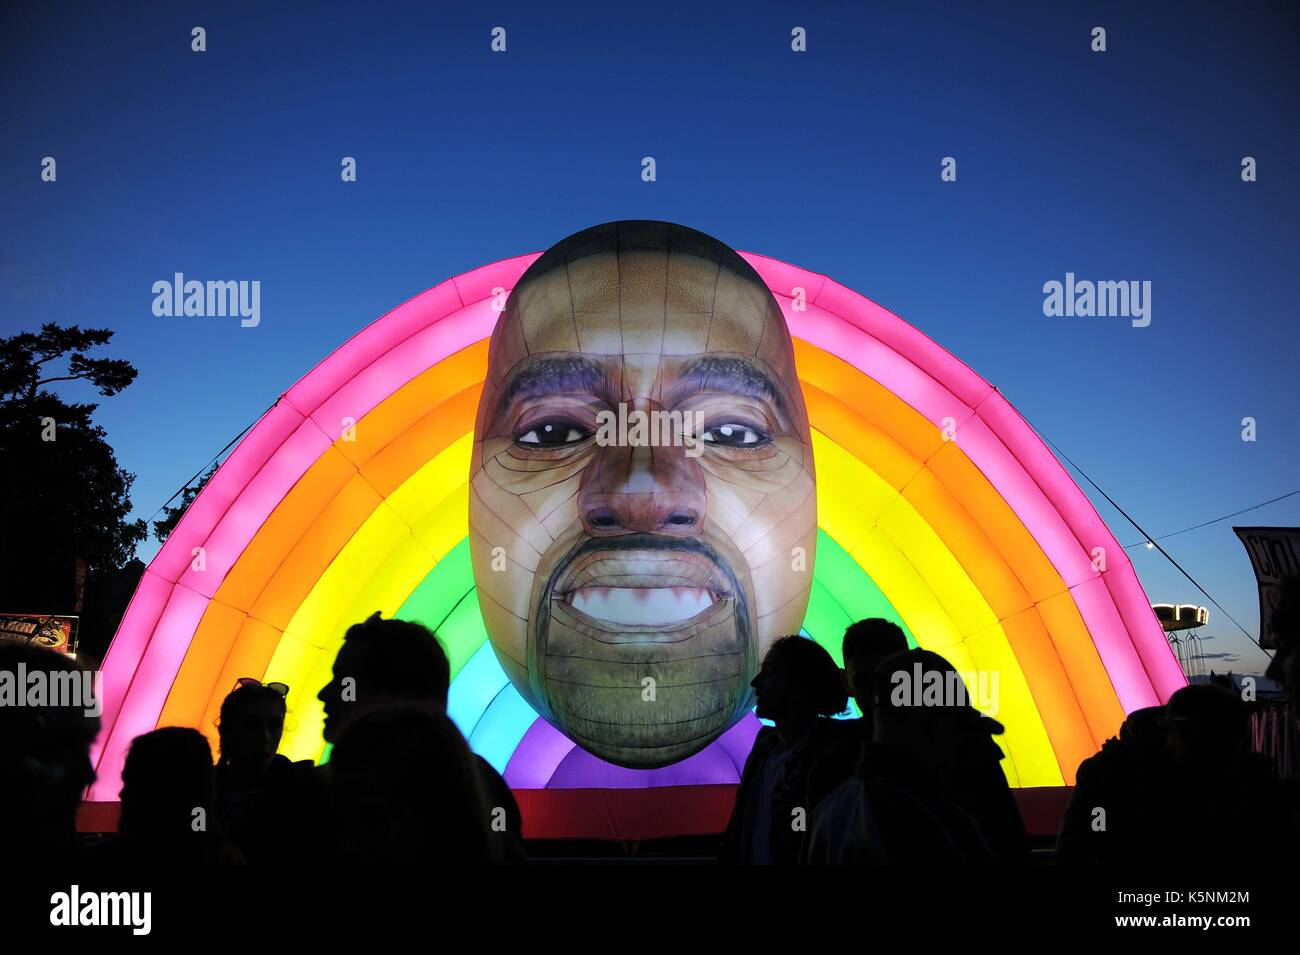 Kanye West au bestival gonflable music festival. crédit : kanye west gonflable finnbarr webster/Alamy live news Banque D'Images